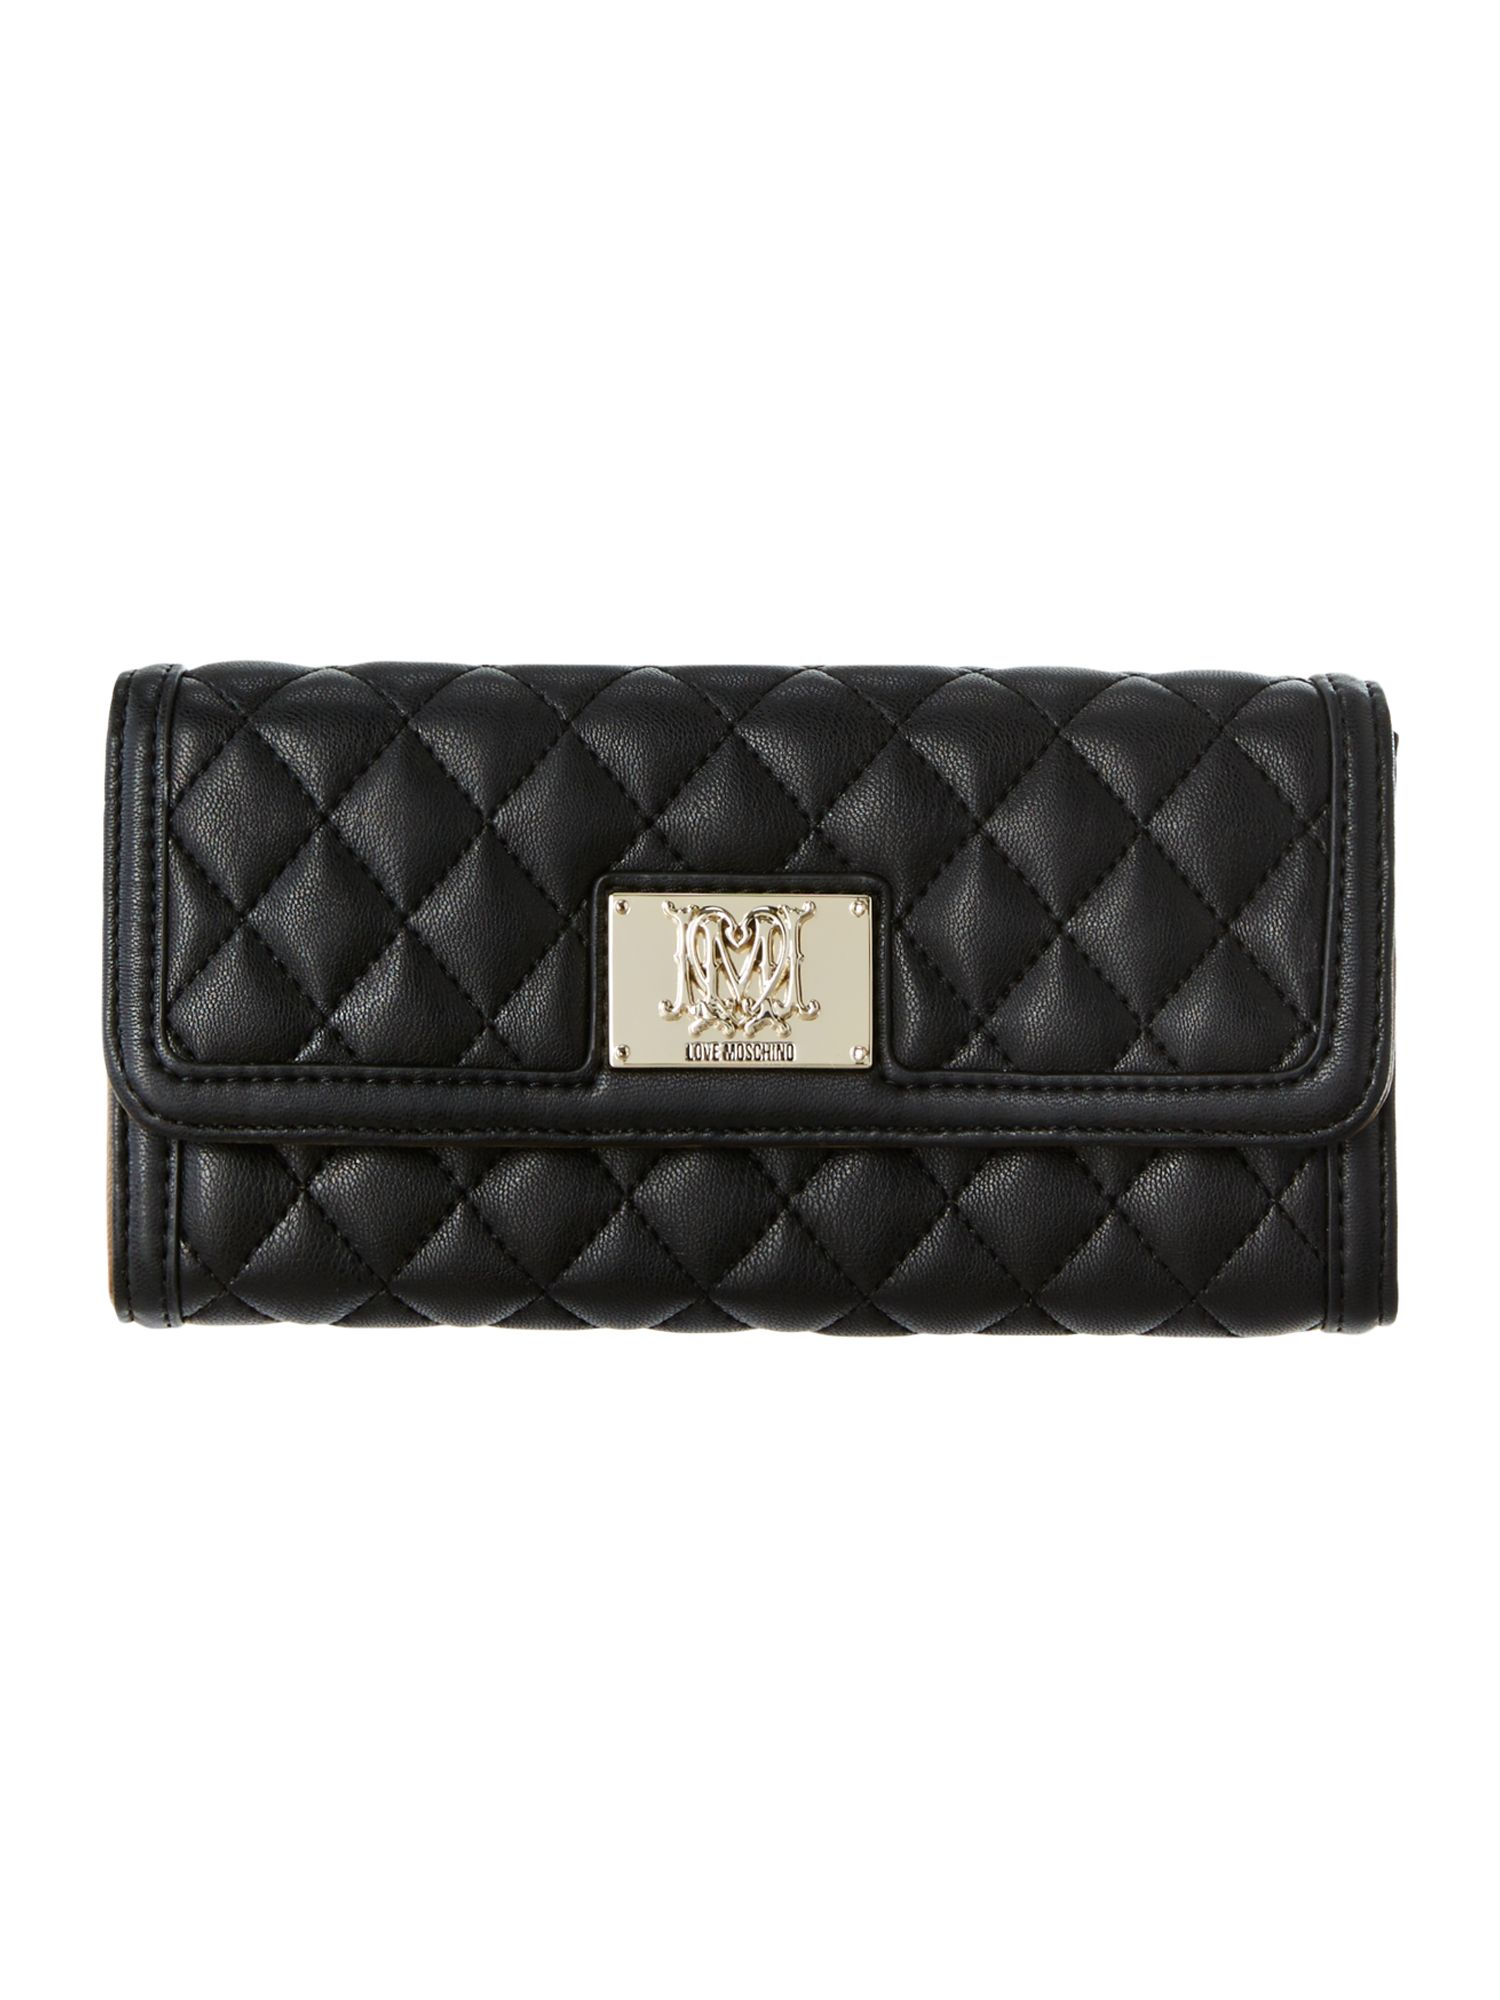 Black large quilted flapover purse